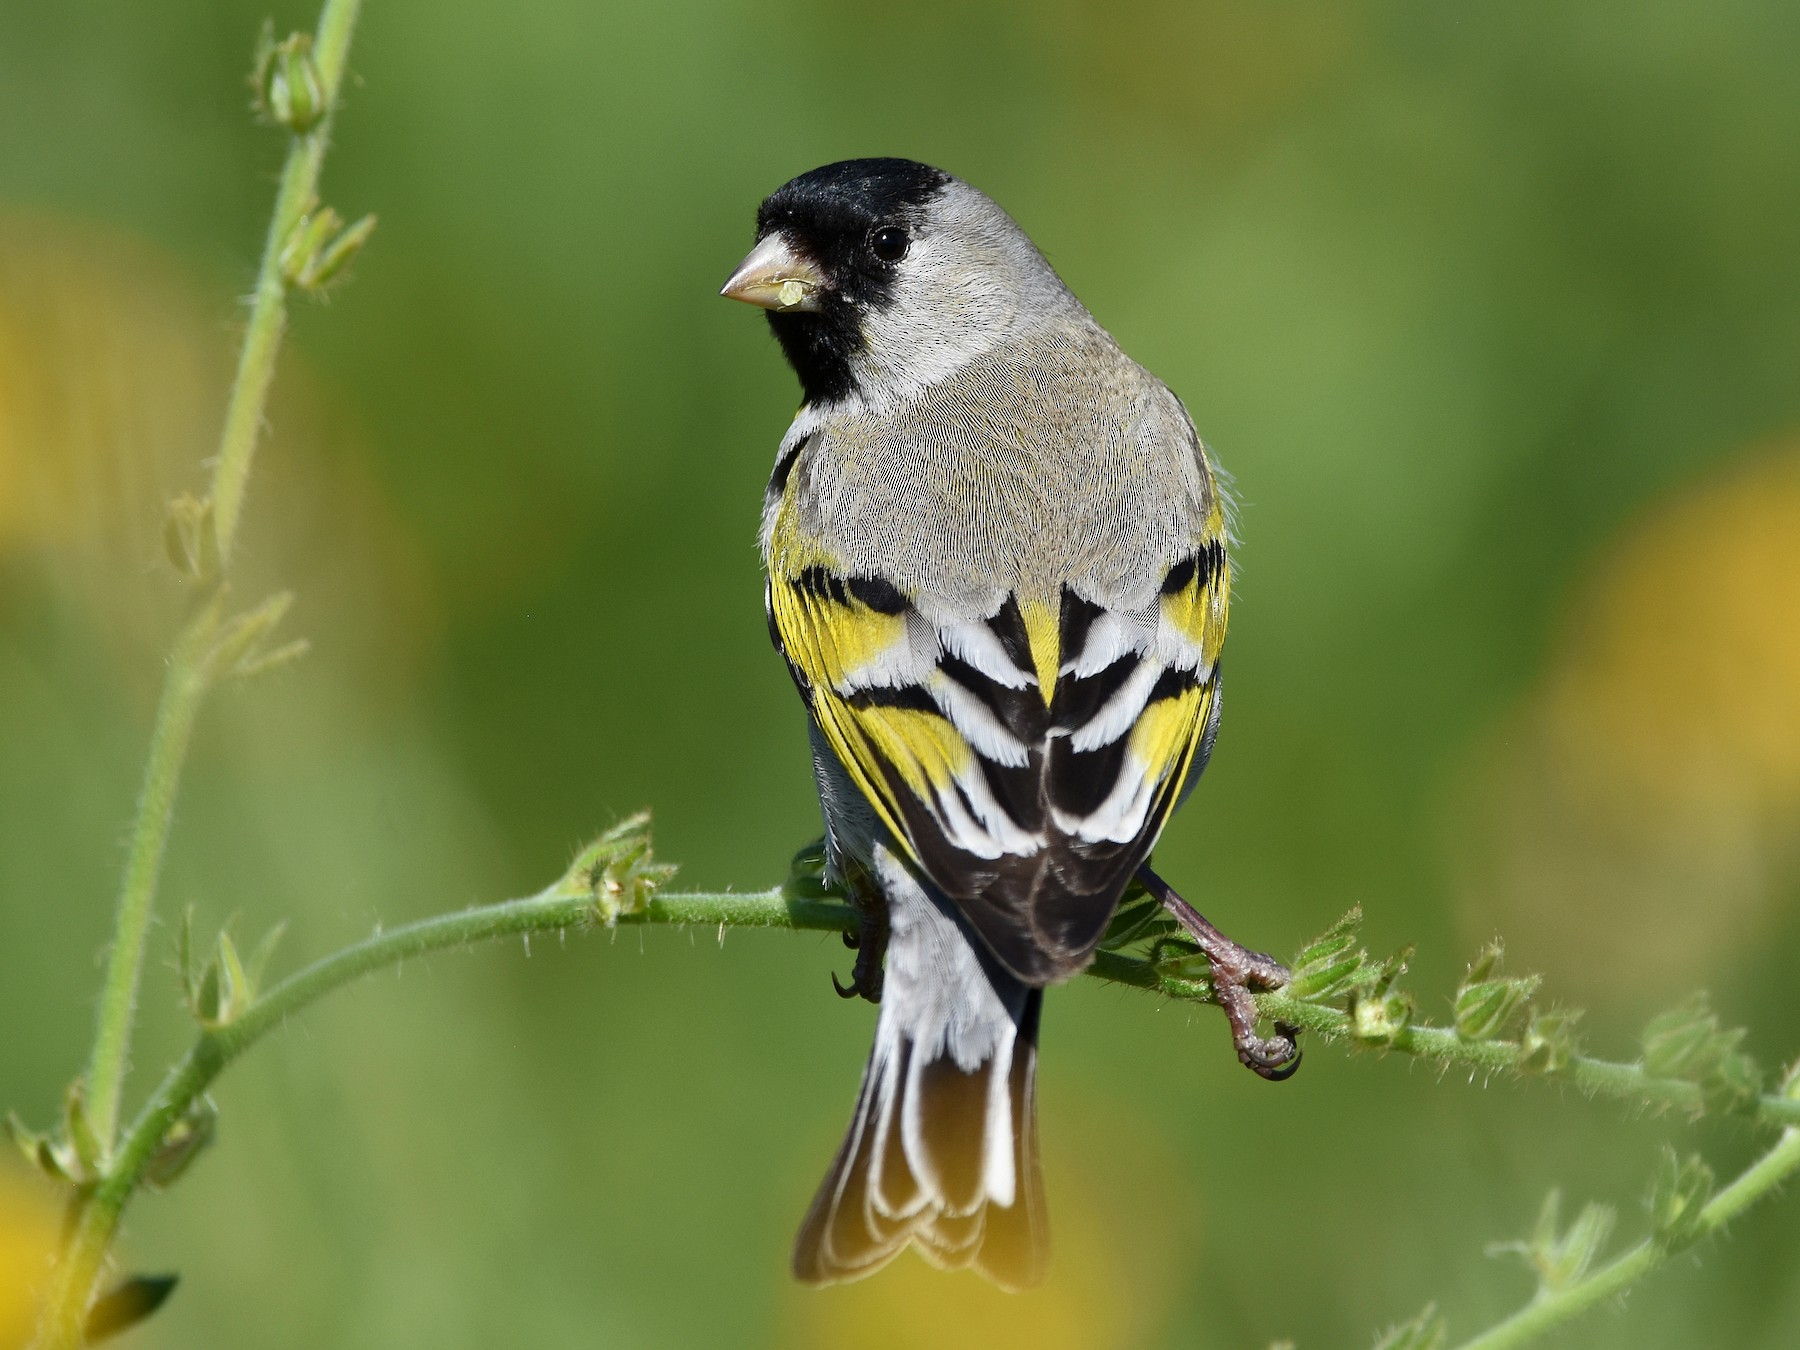 Lawrence's Goldfinch - Christopher Lindsey